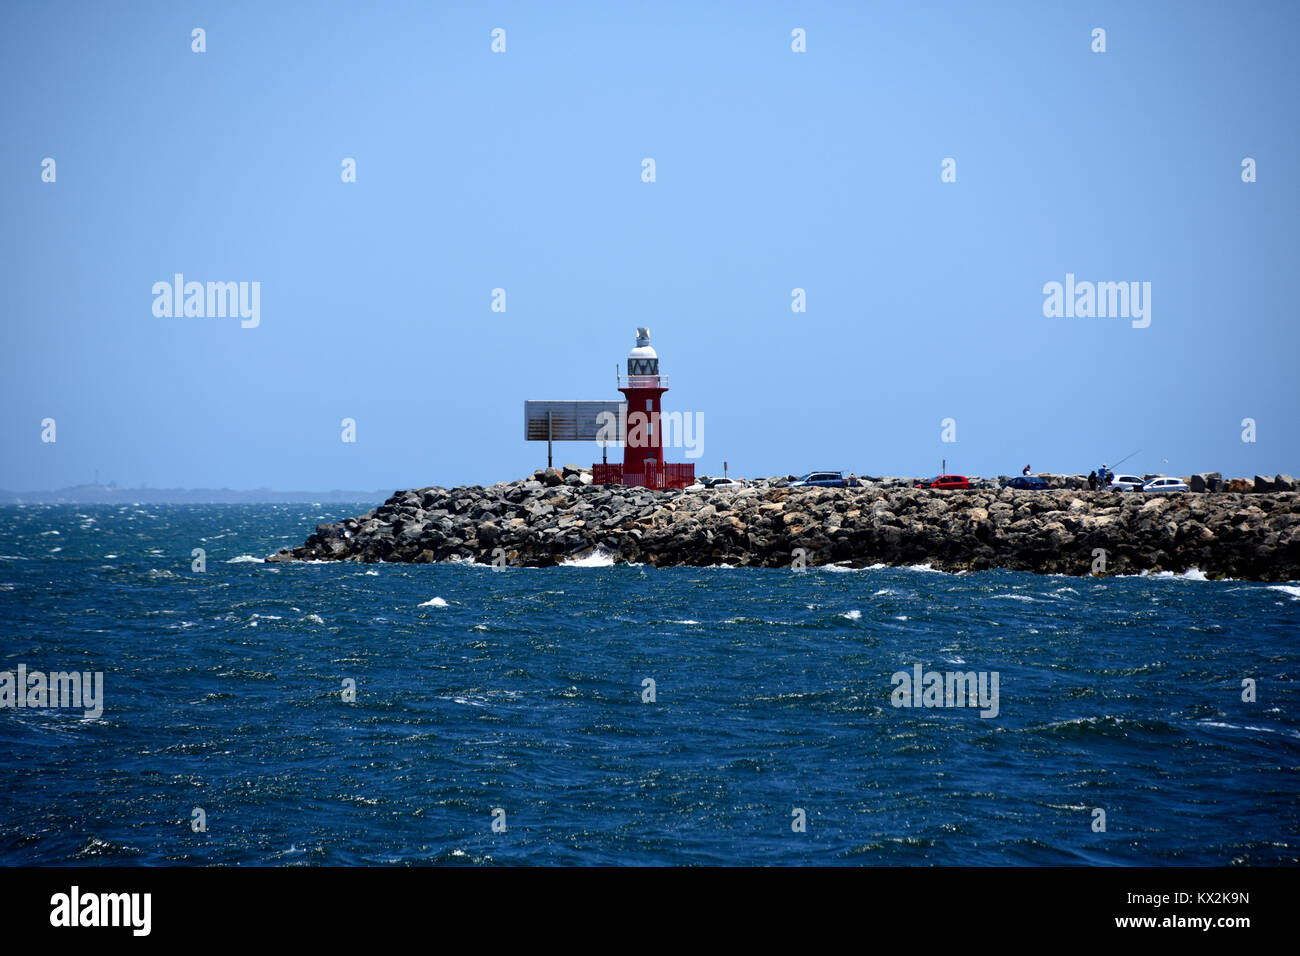 Port Red light house at the entrance to Freemantle Harbour - Stock Image